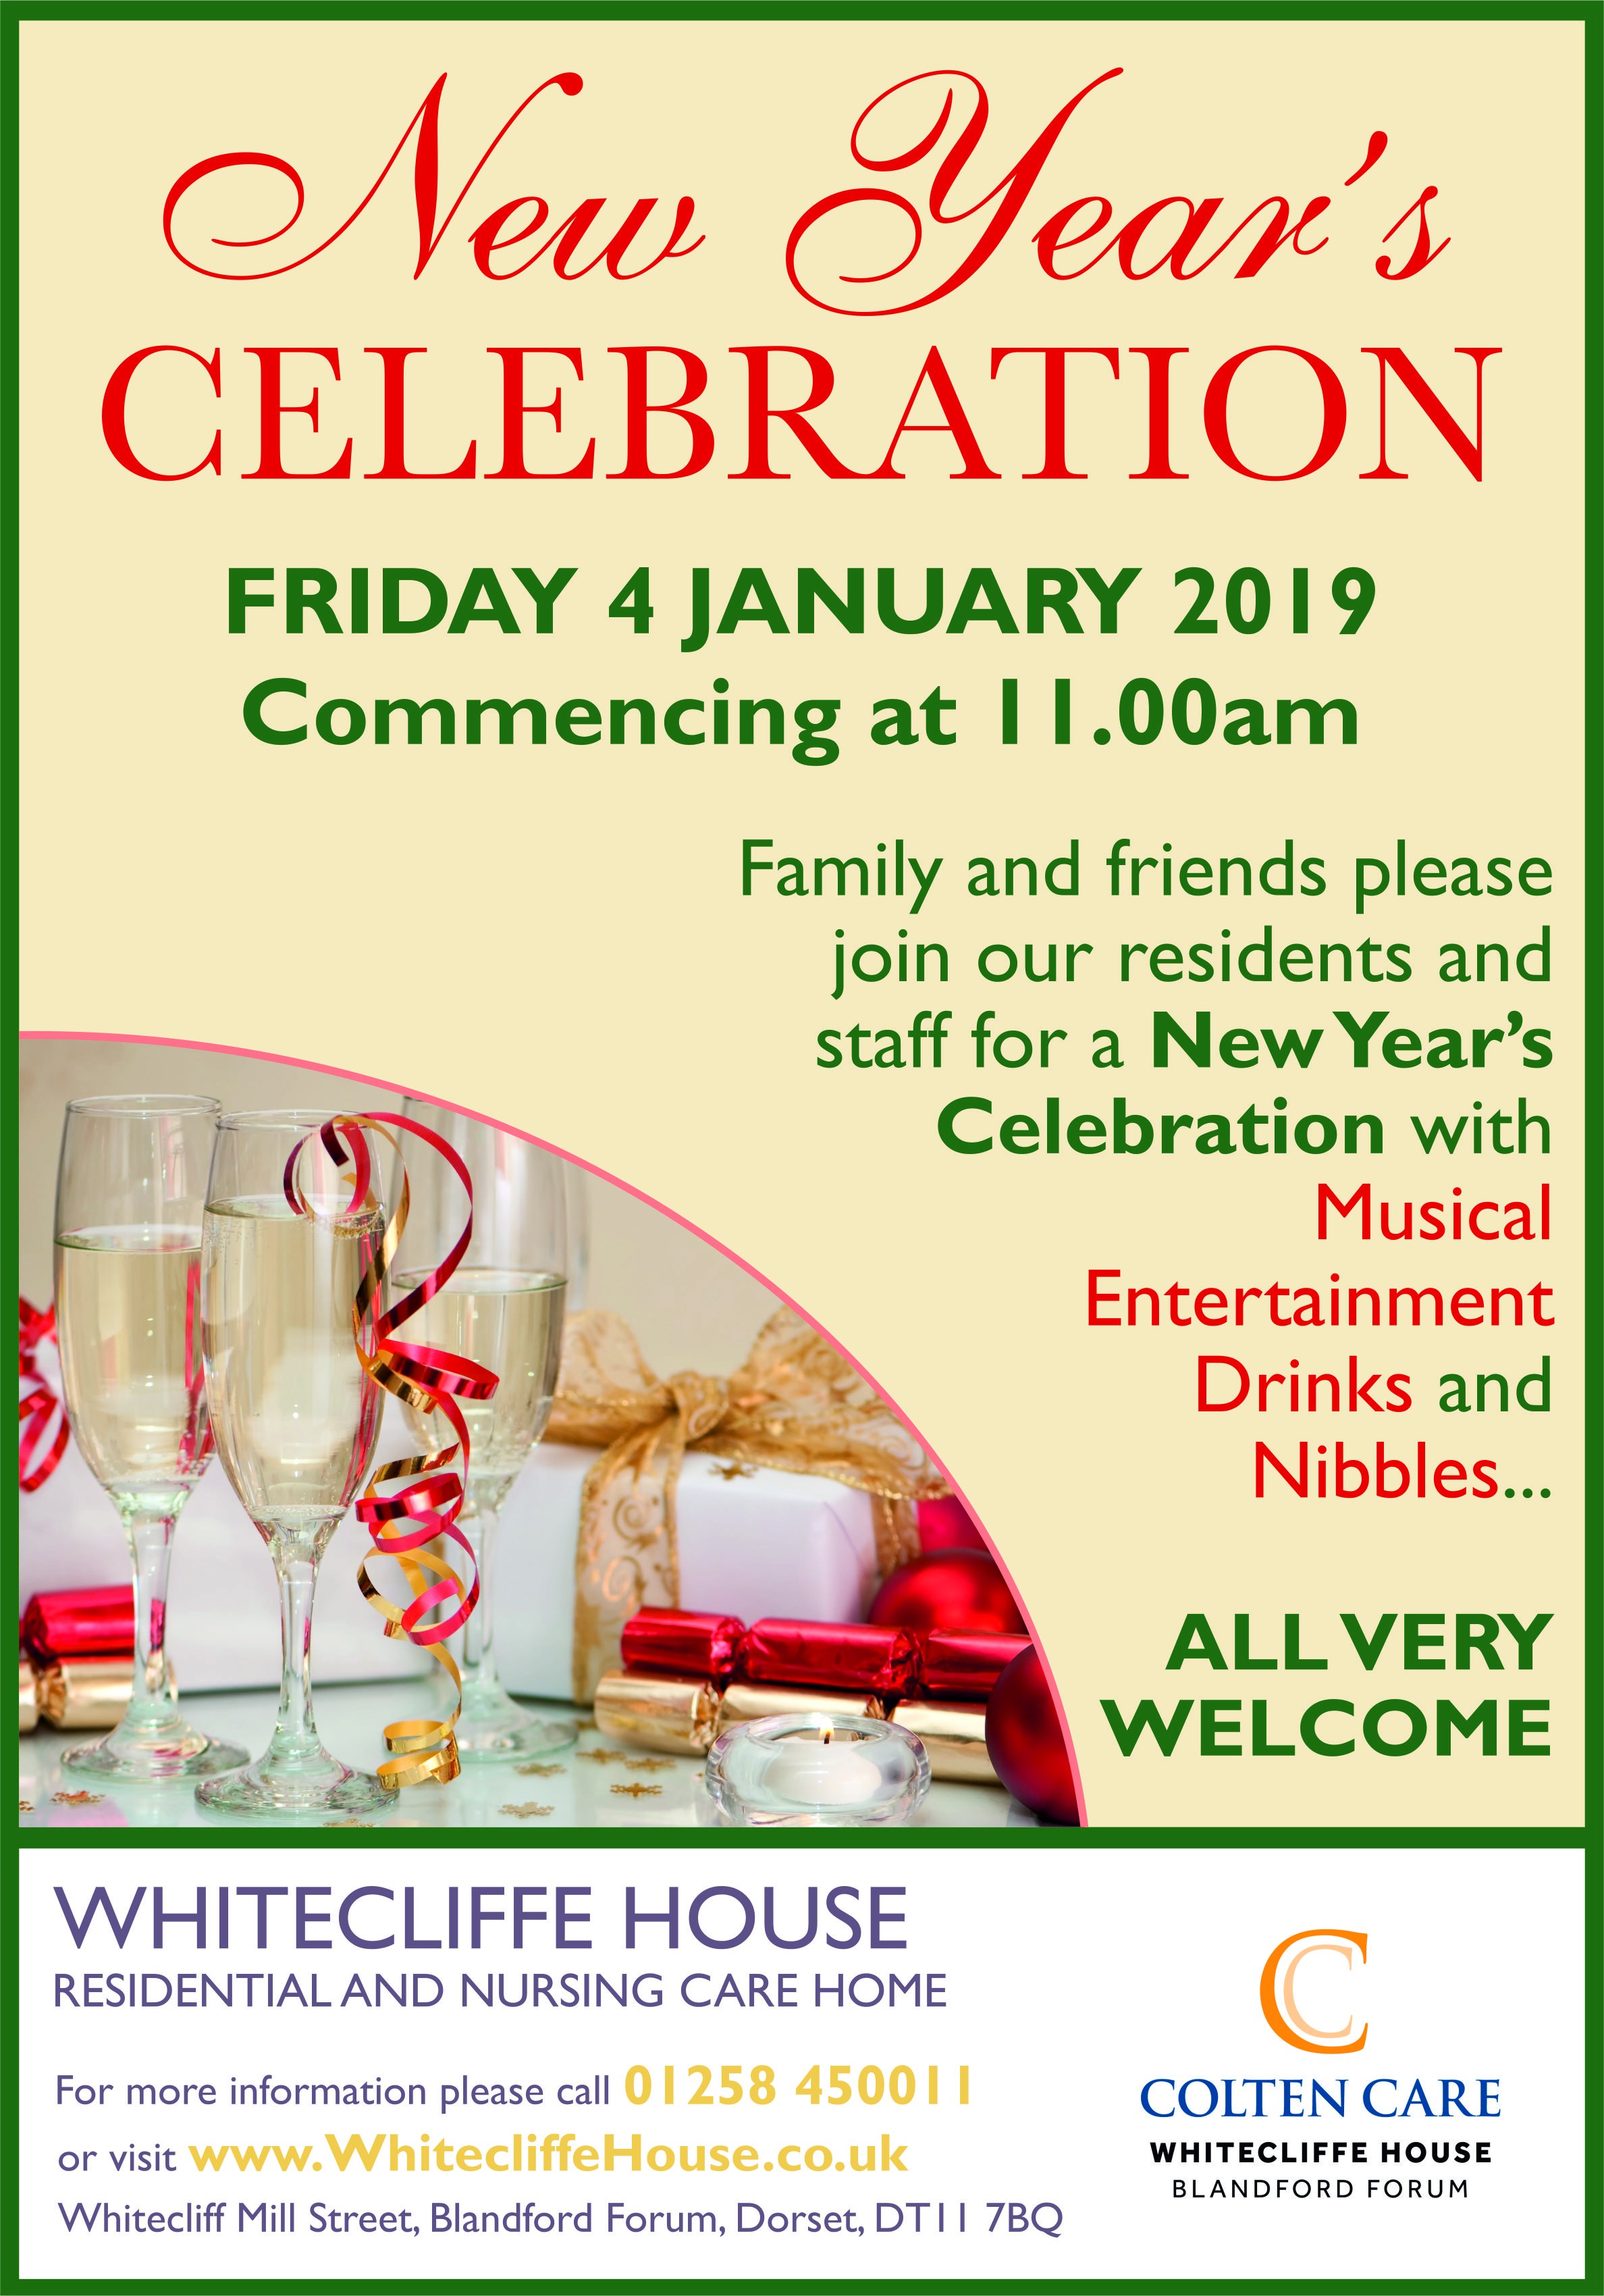 Whitecliffe House - New Years Celebration Poster 4 Jan - 28 Nov 2018